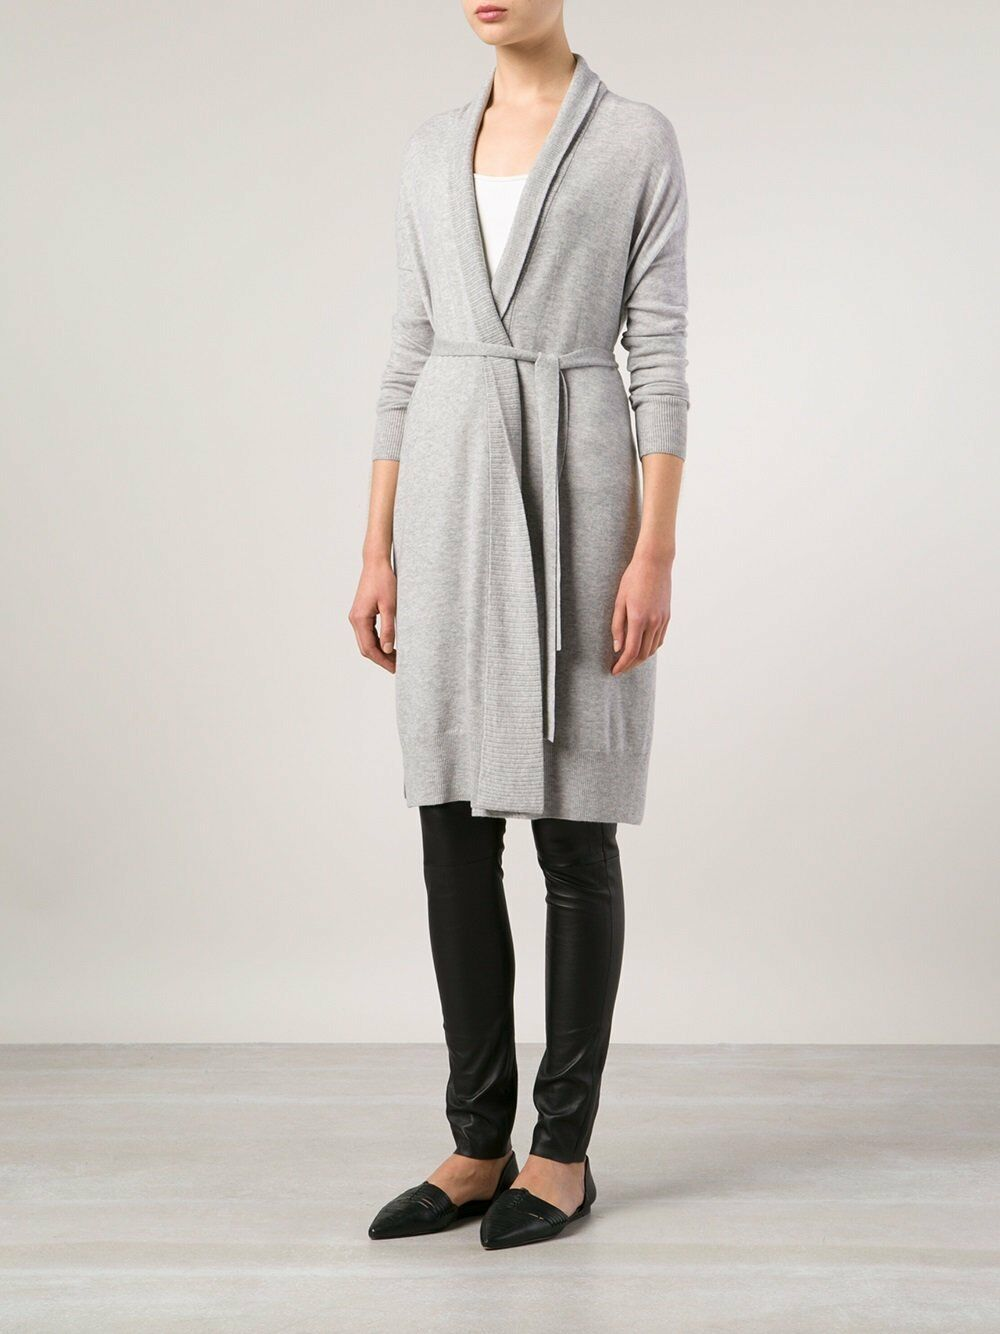 NWT Vince Women's Grey Wool Blend Oversized  Sweater Cardigan, Size Large